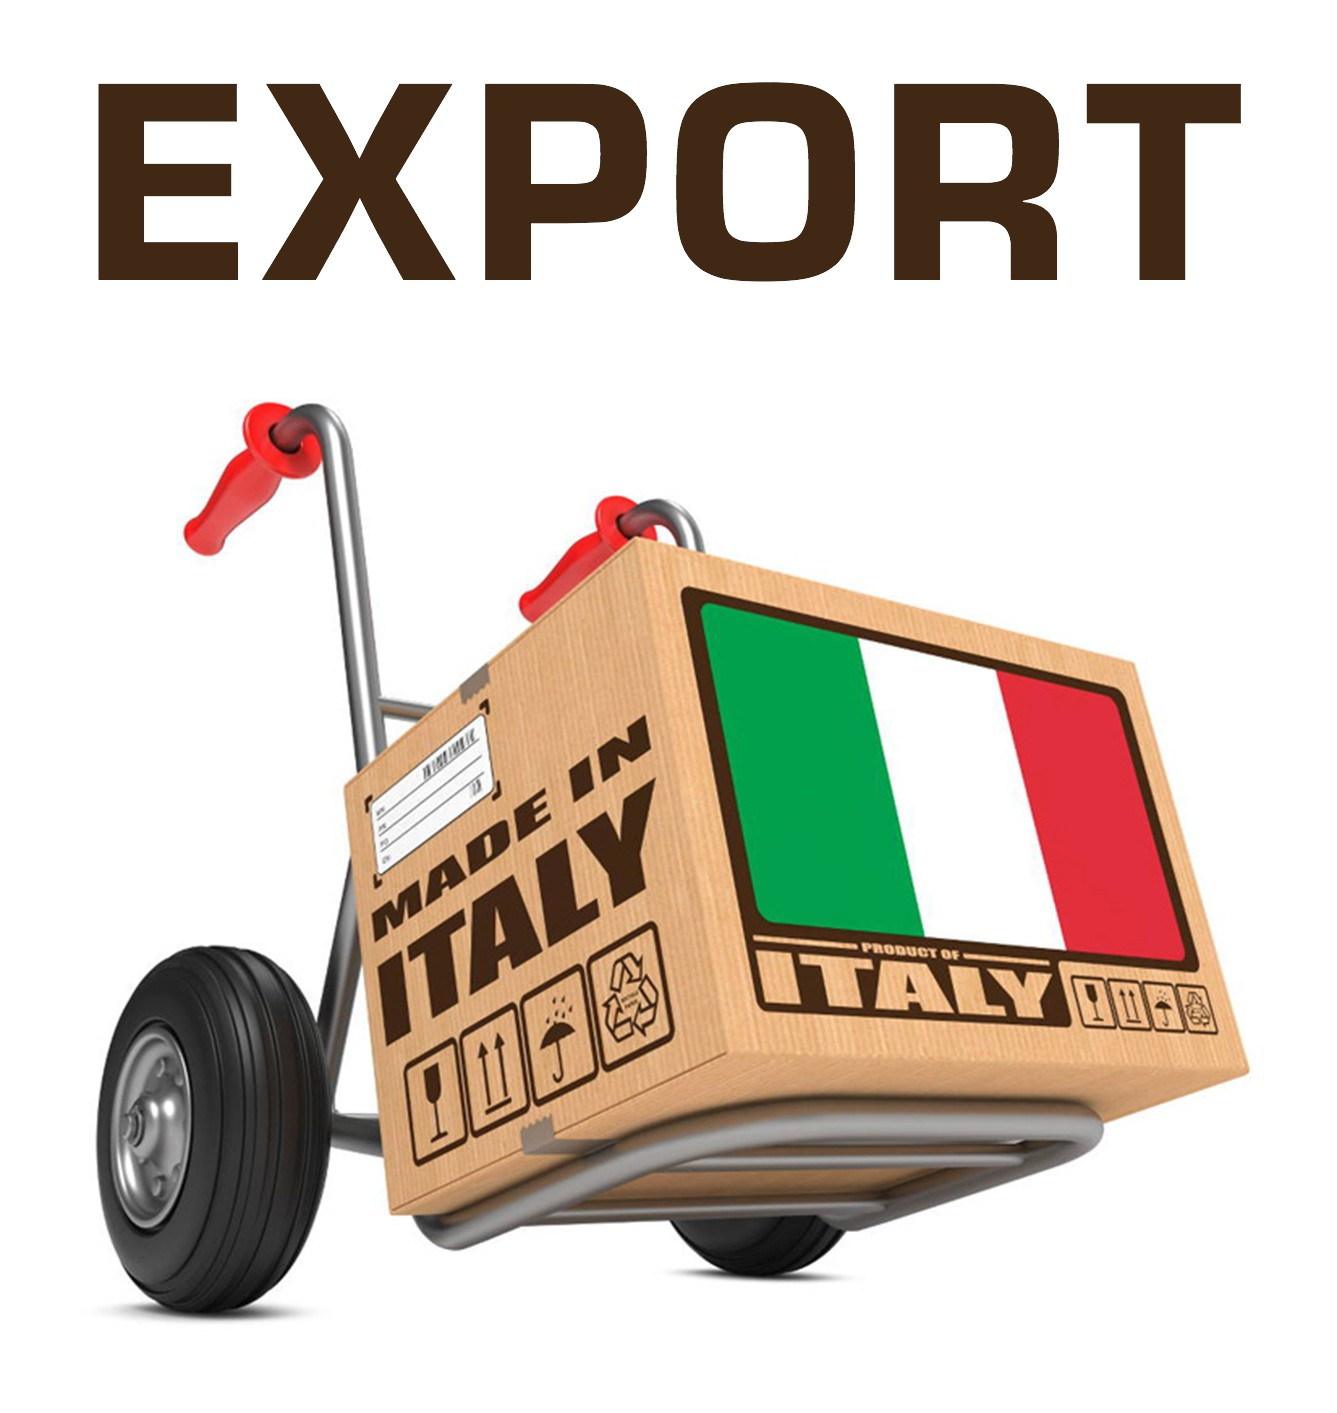 2017 Da Record Per L'export Made In Italy